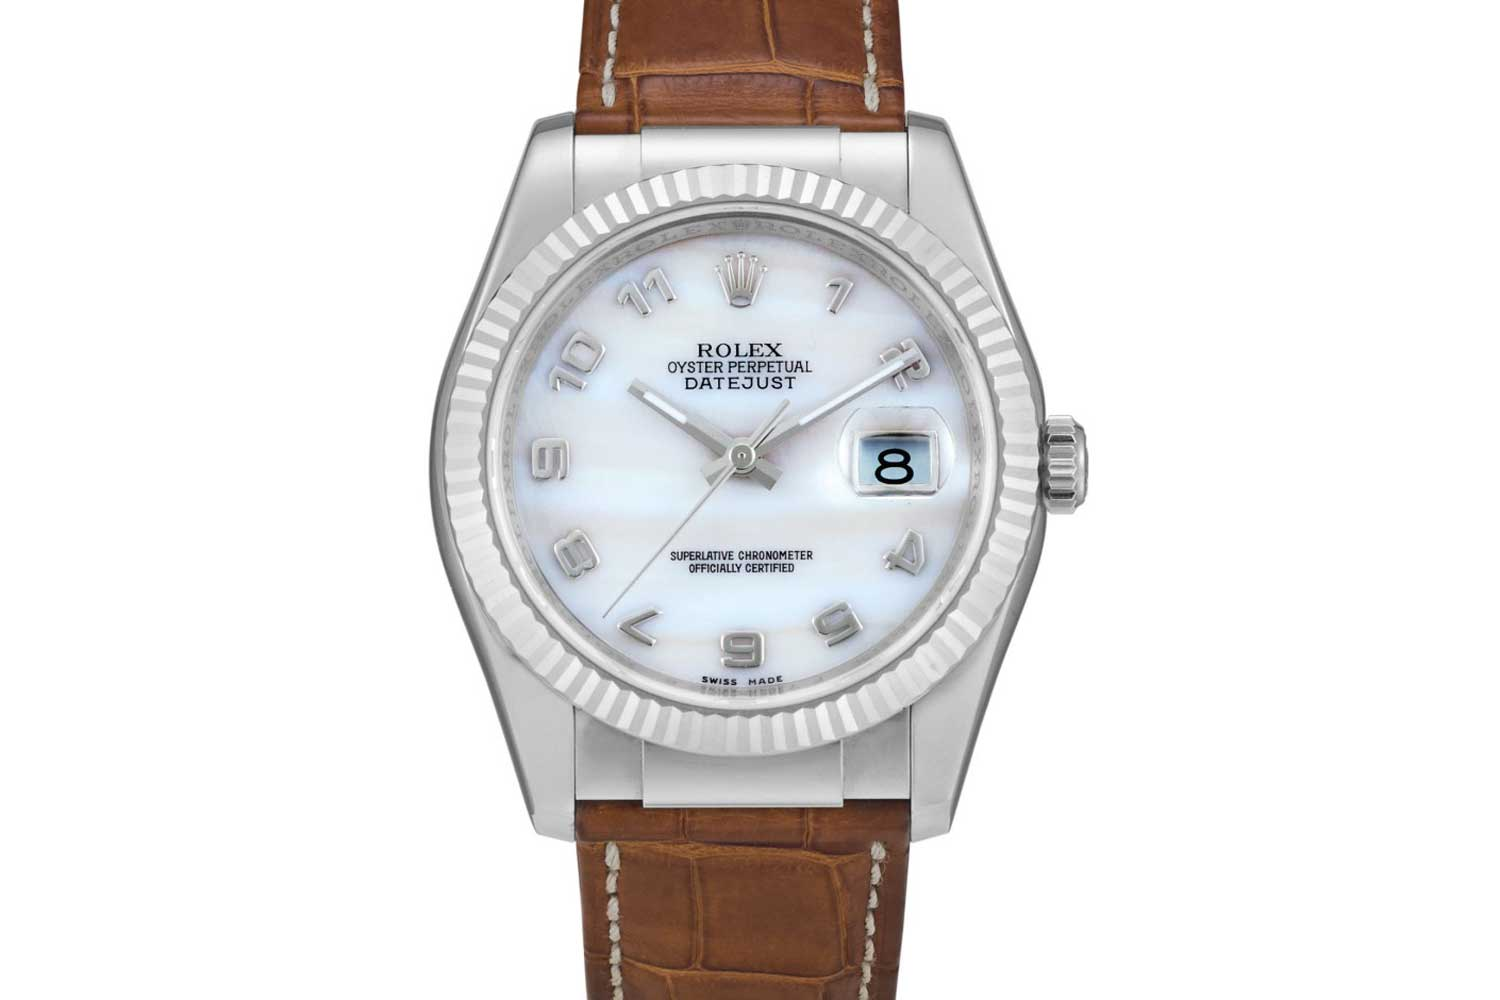 Rolex Datejust reference 116139 in white gold with hardstone dial from 2005